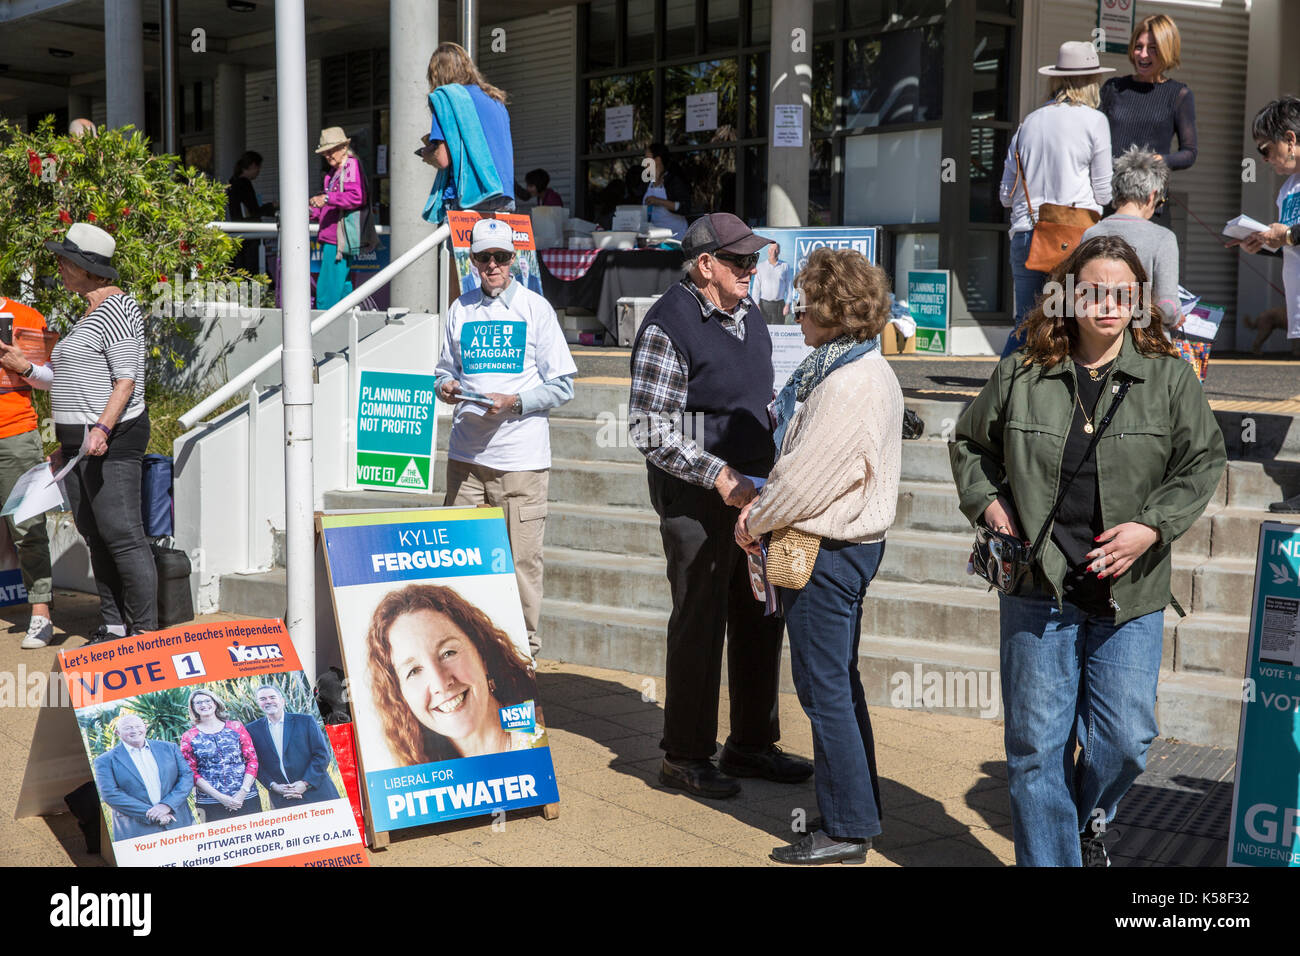 Saturday 9th September 2017. Voters go to the polls in many local council electorates across Sydney today, here Stock Photo